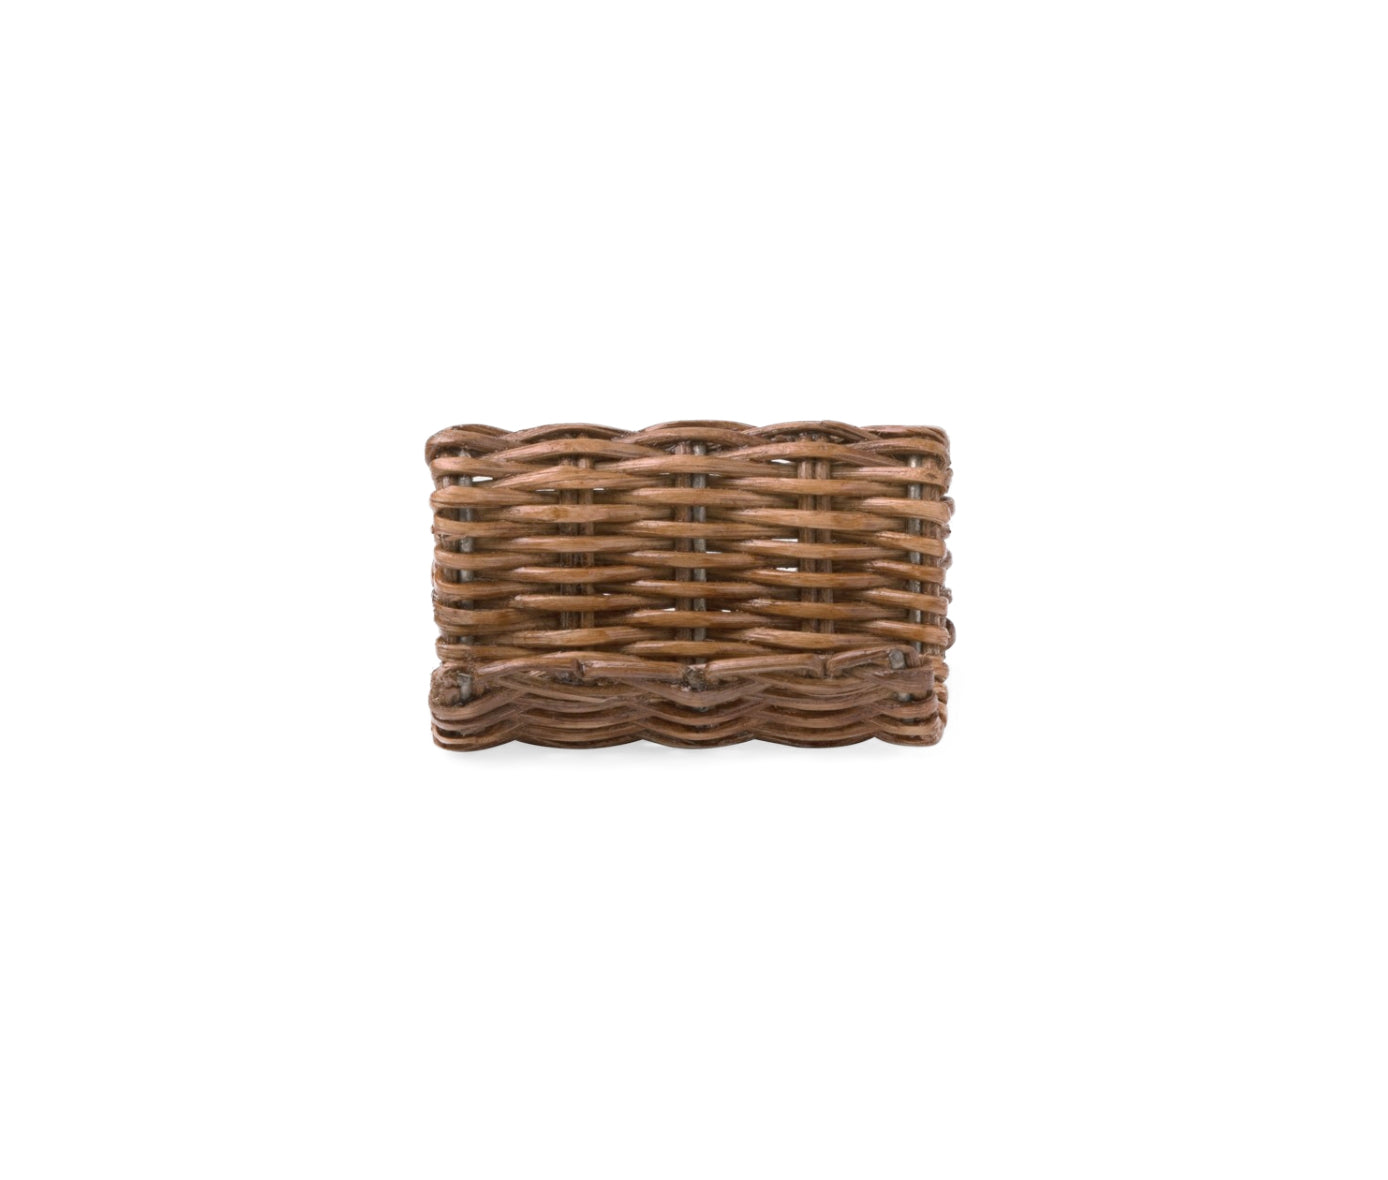 Gibson Honey Rattan Card Holder - Amy Berry Home